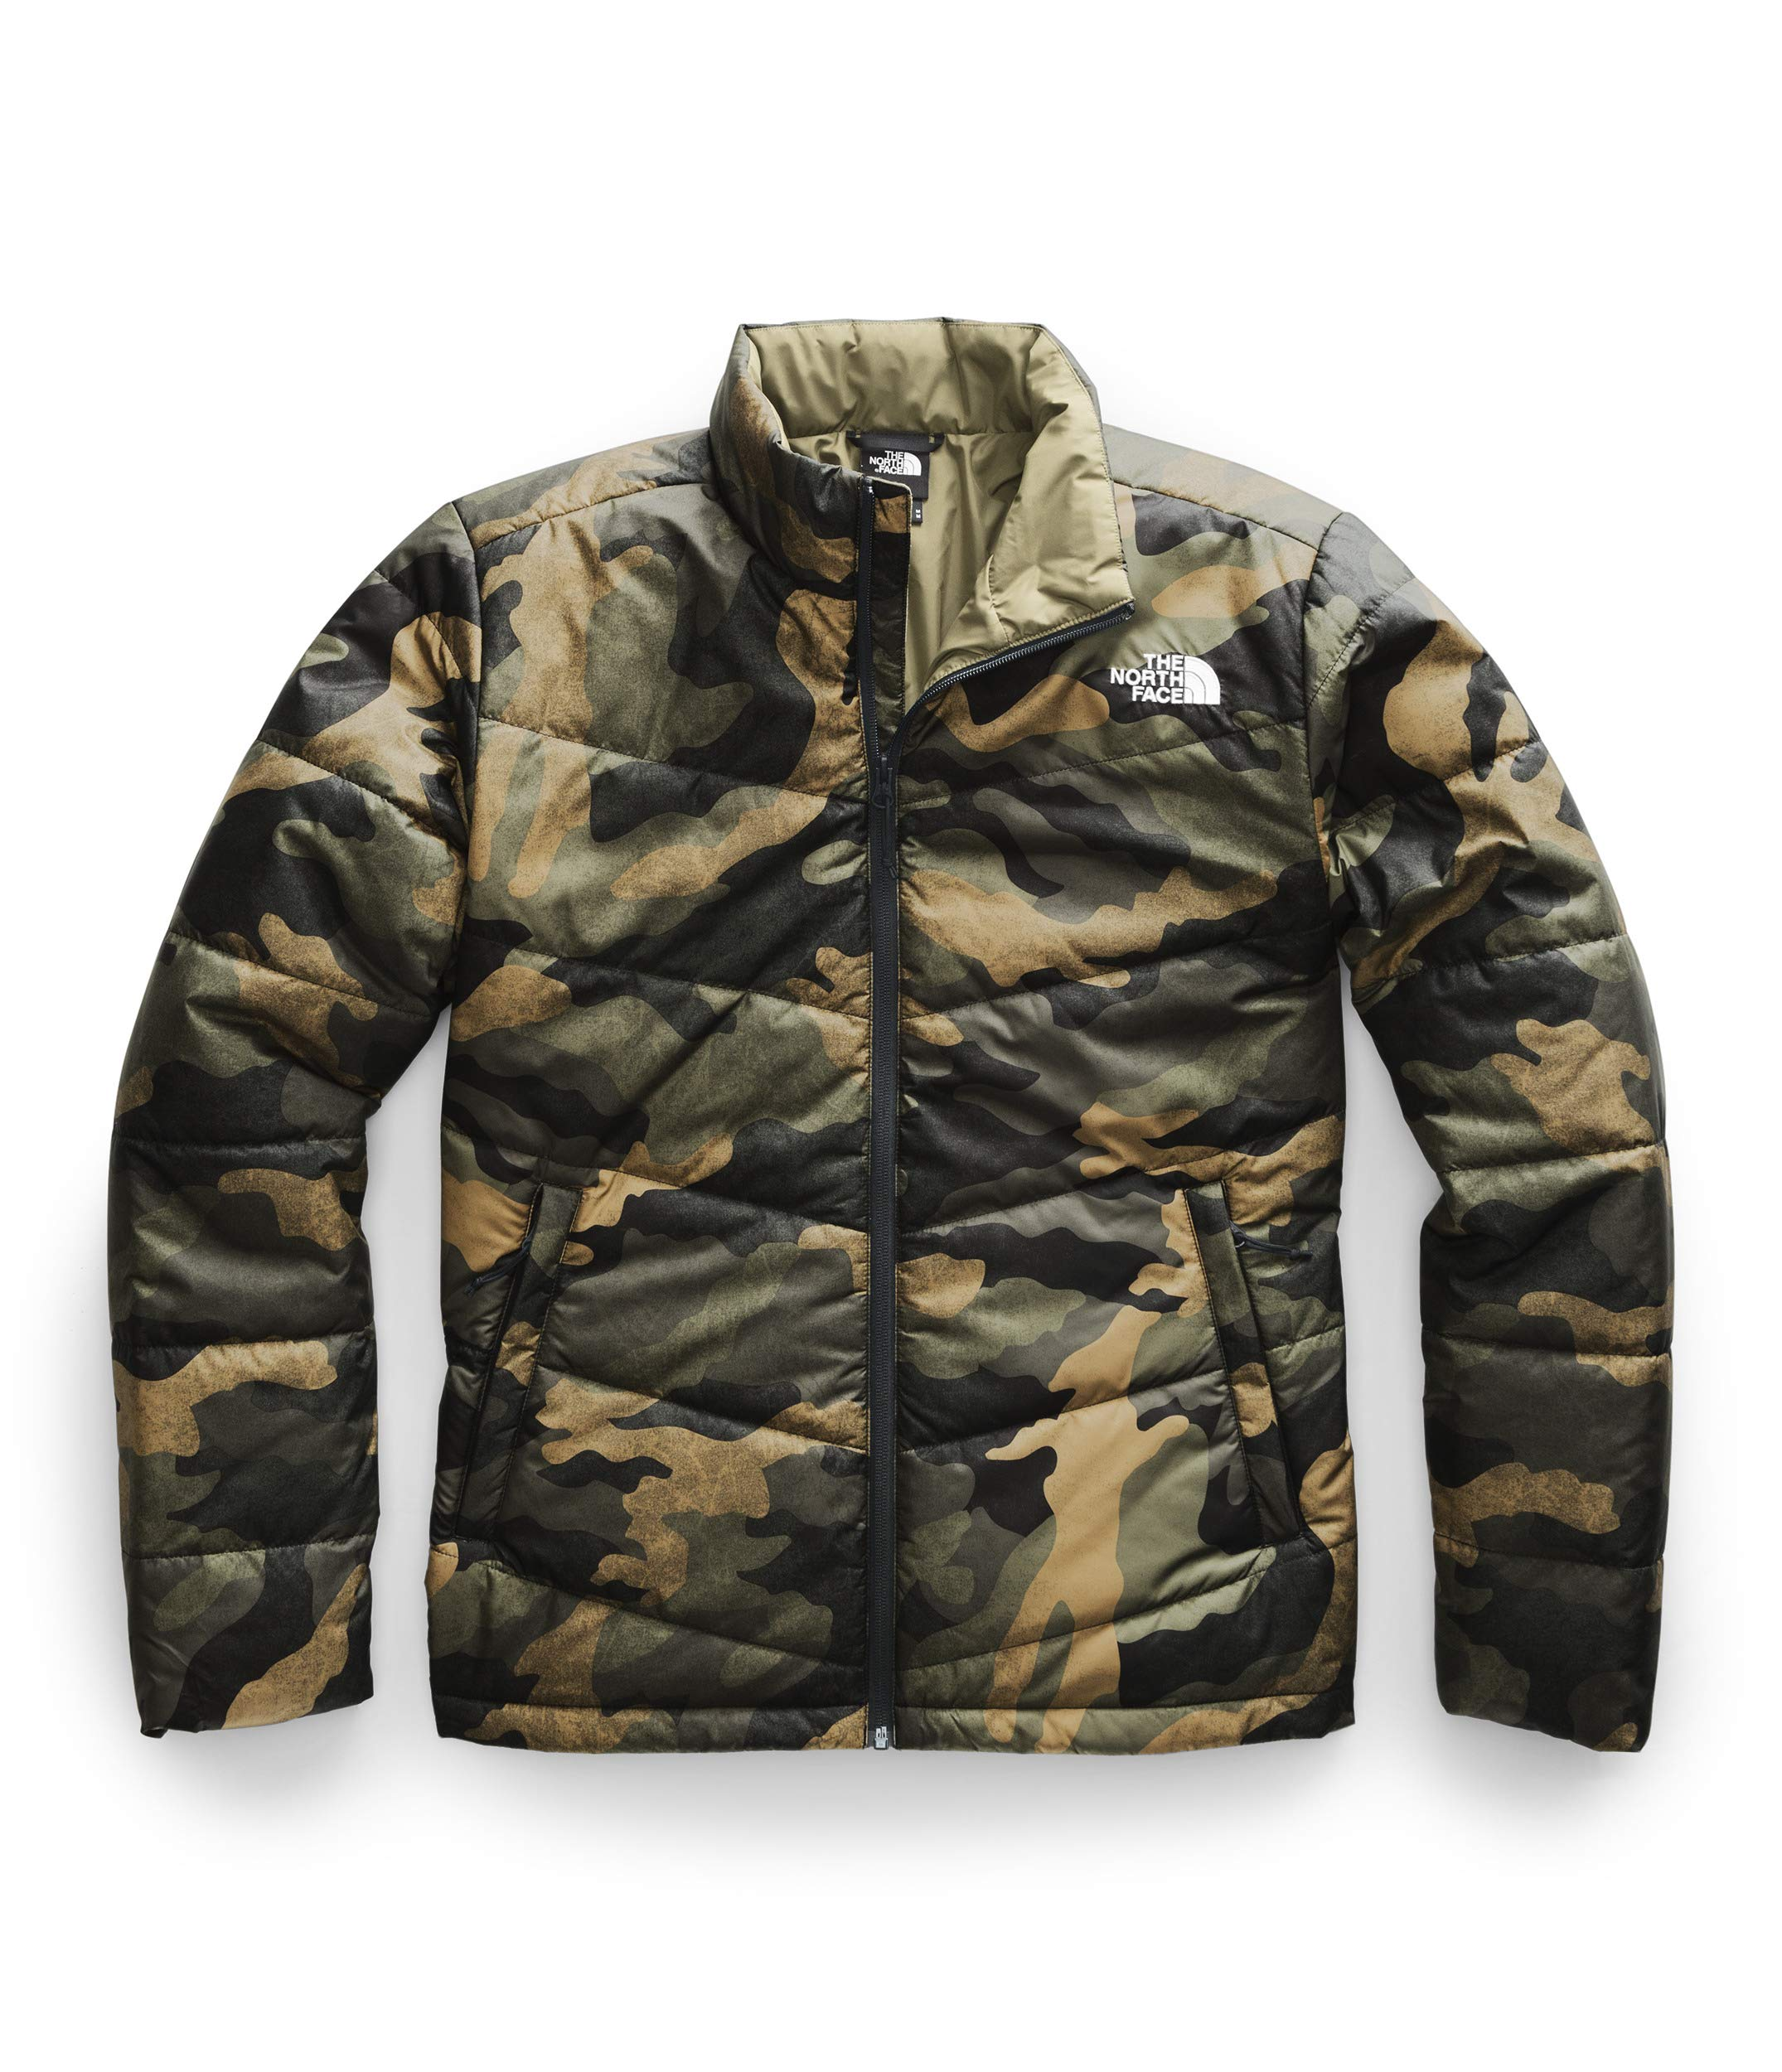 The North Face Men's Junction Insulated Jacket, Burnt Olive Green Waxed Camo Print, M by The North Face